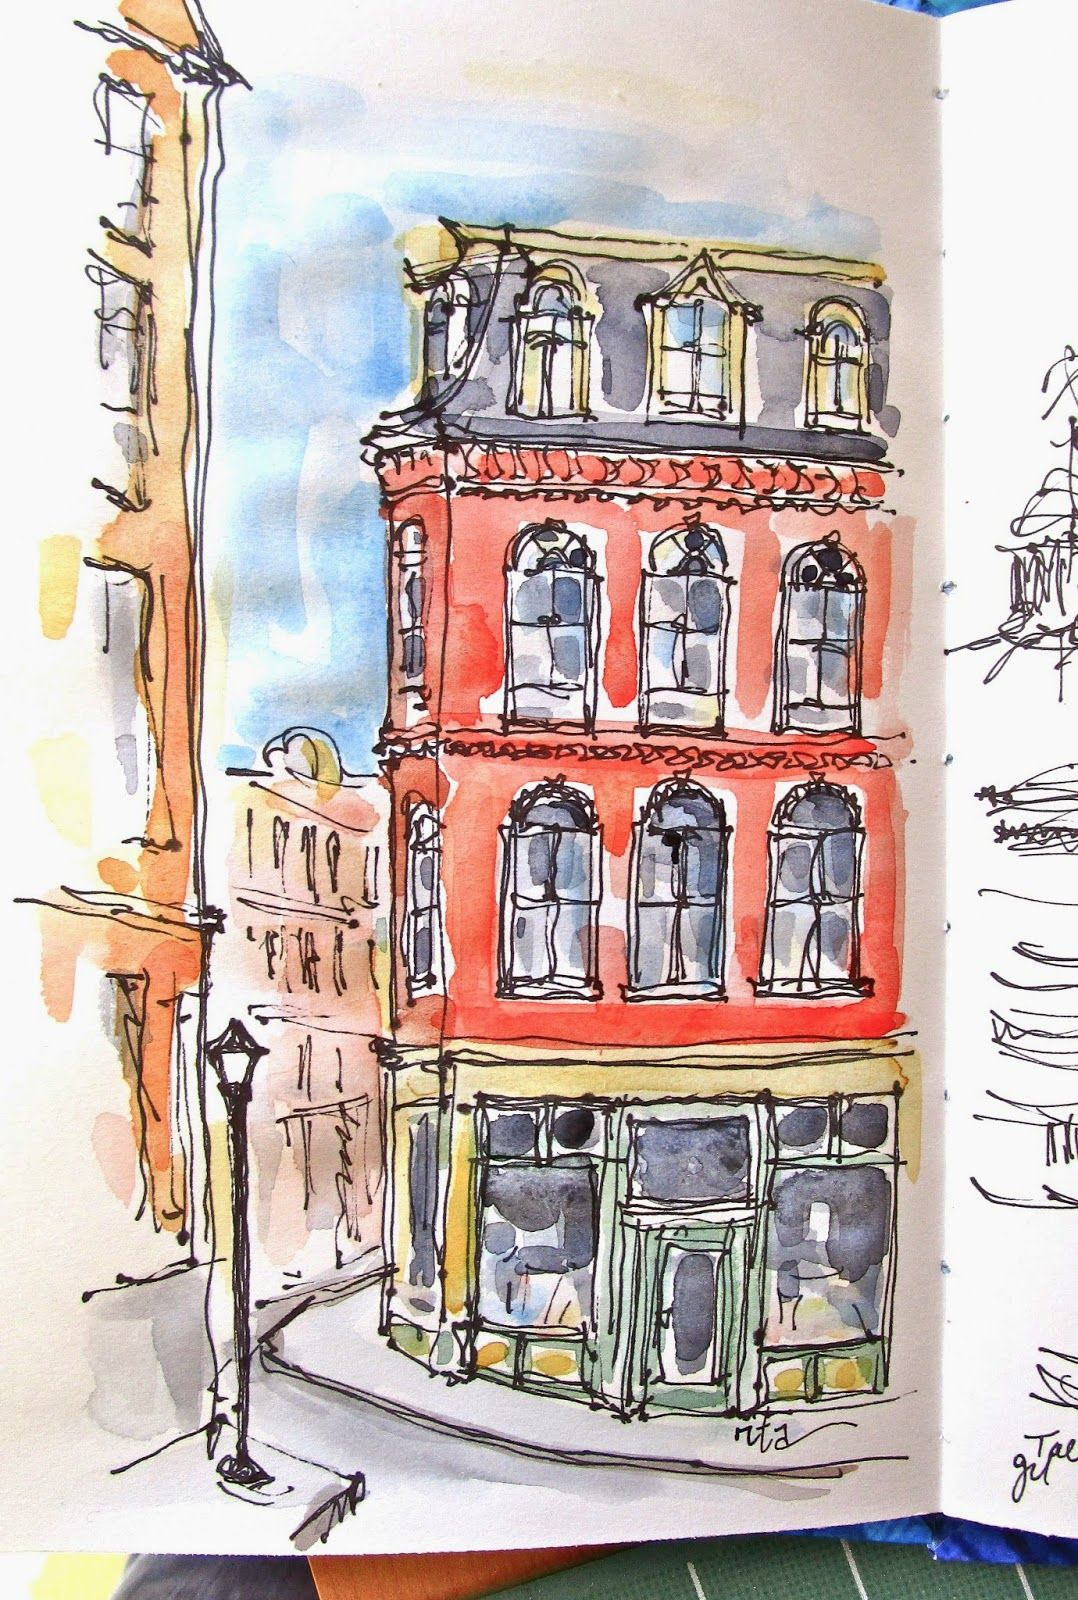 Sketchbook Wandering By Rita I Love Portland Maine